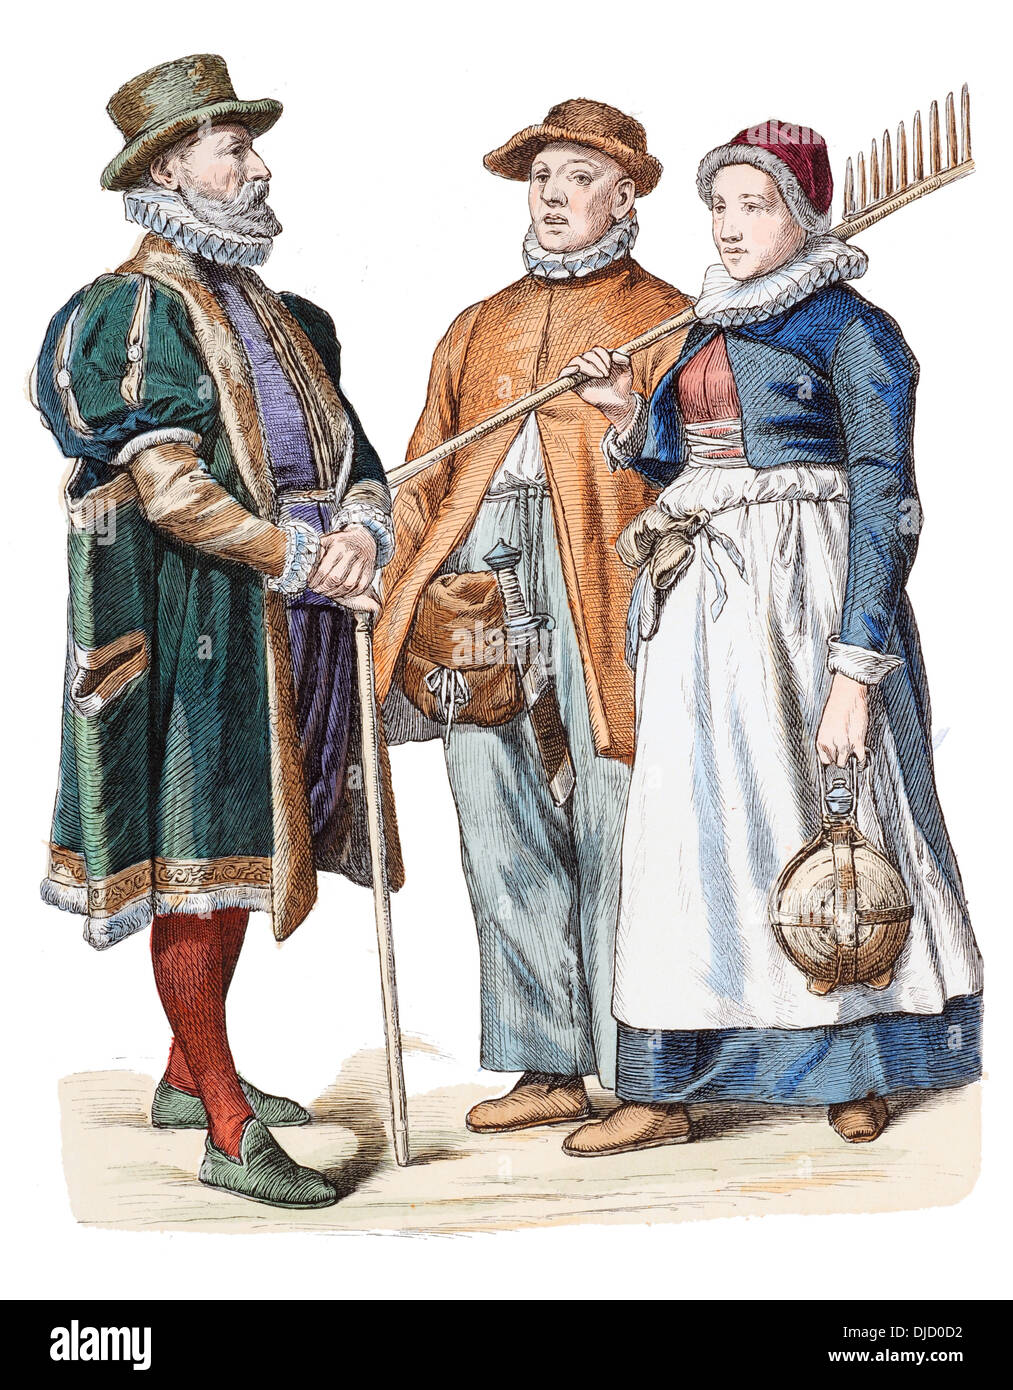 Late 16th Century XVI 1500s German Costumes (Left to right) Merchant of Rostock and peasants of Rostock - Stock Image